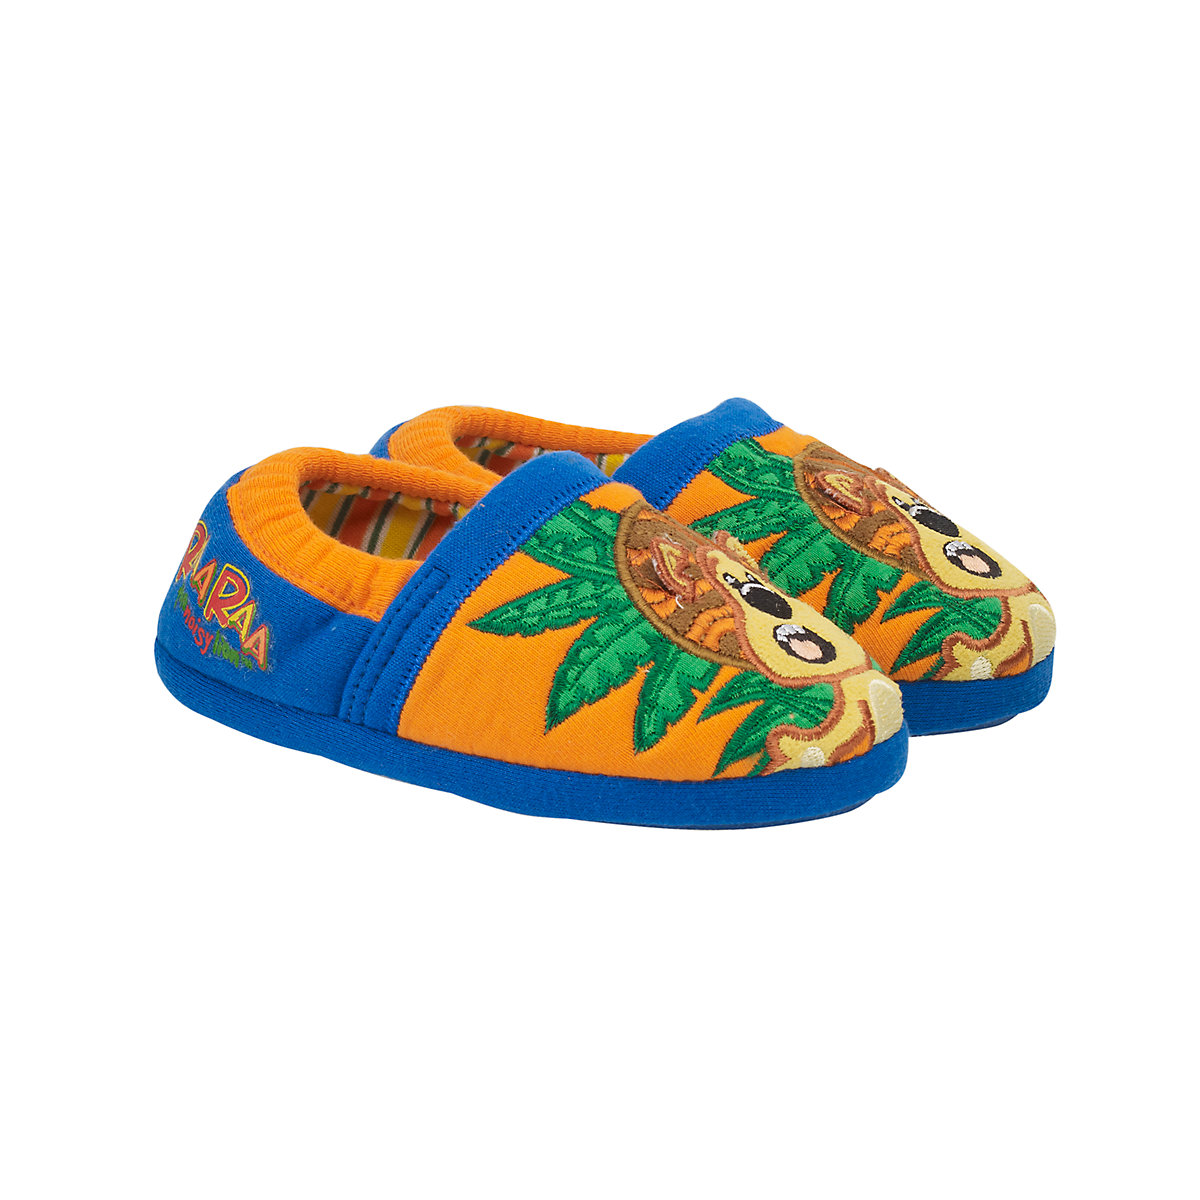 Raa Raa the Lion Slippers - Lion Gifts